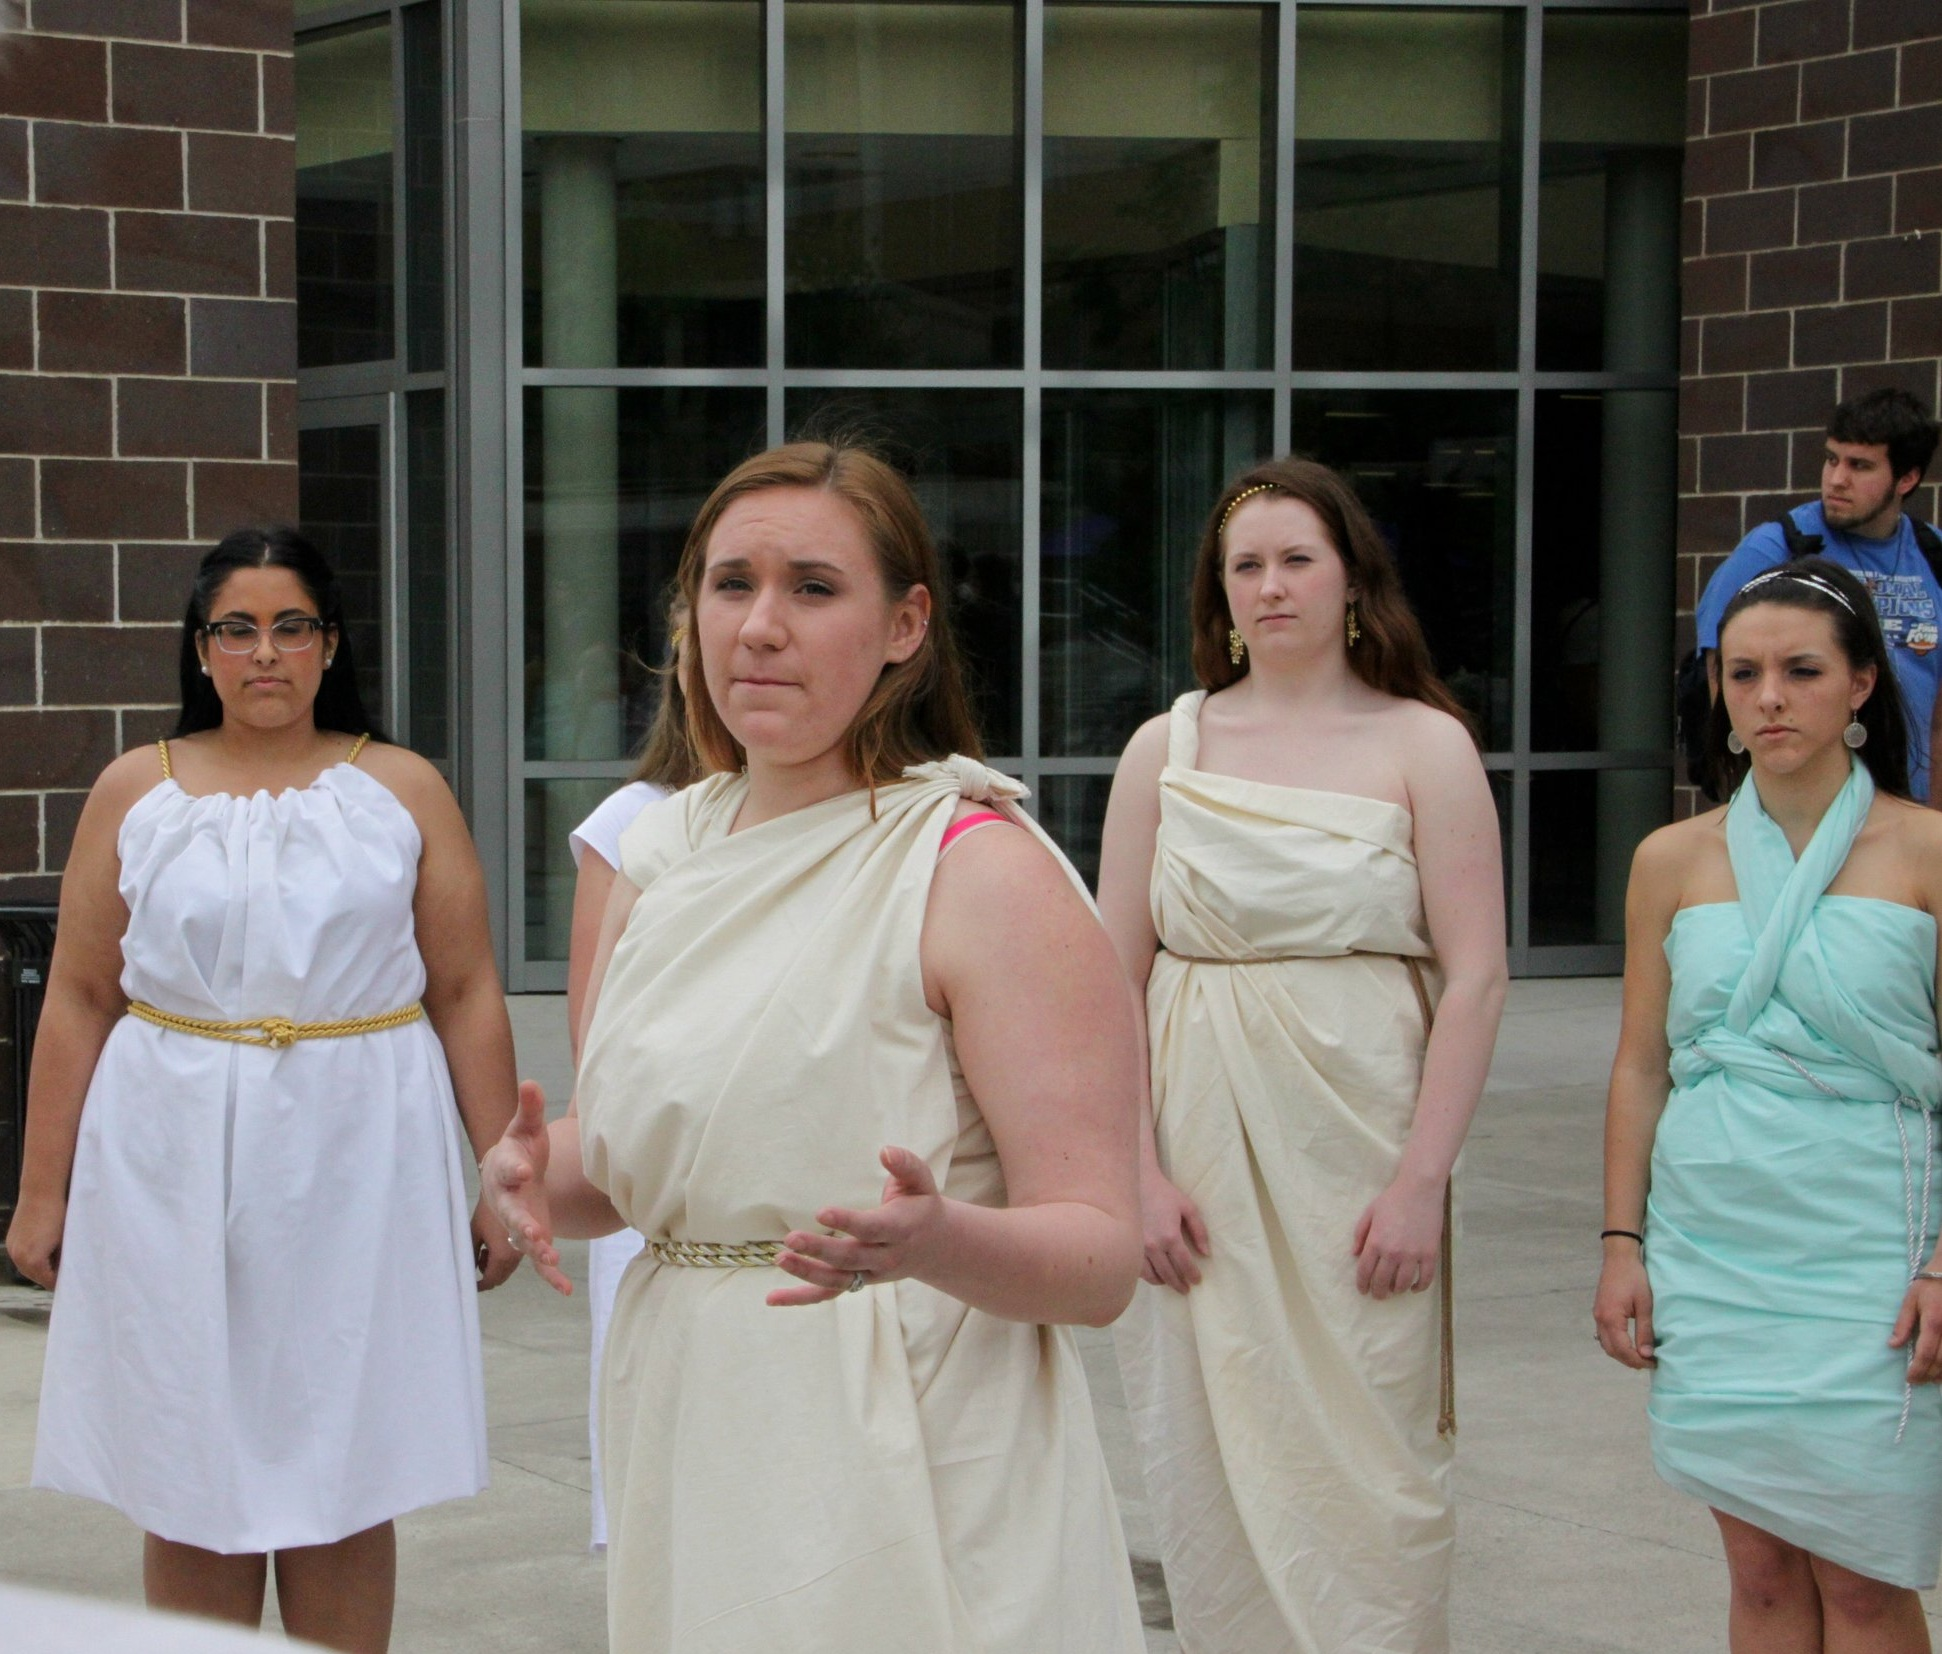 Scranton Students dressed in togas speak about Plato's  Phaedrus  near the campus center as part of the  Trivium , an intensive course within the University's Special Jesuit Liberal Arts Honors Program (photo by University of SCranton)